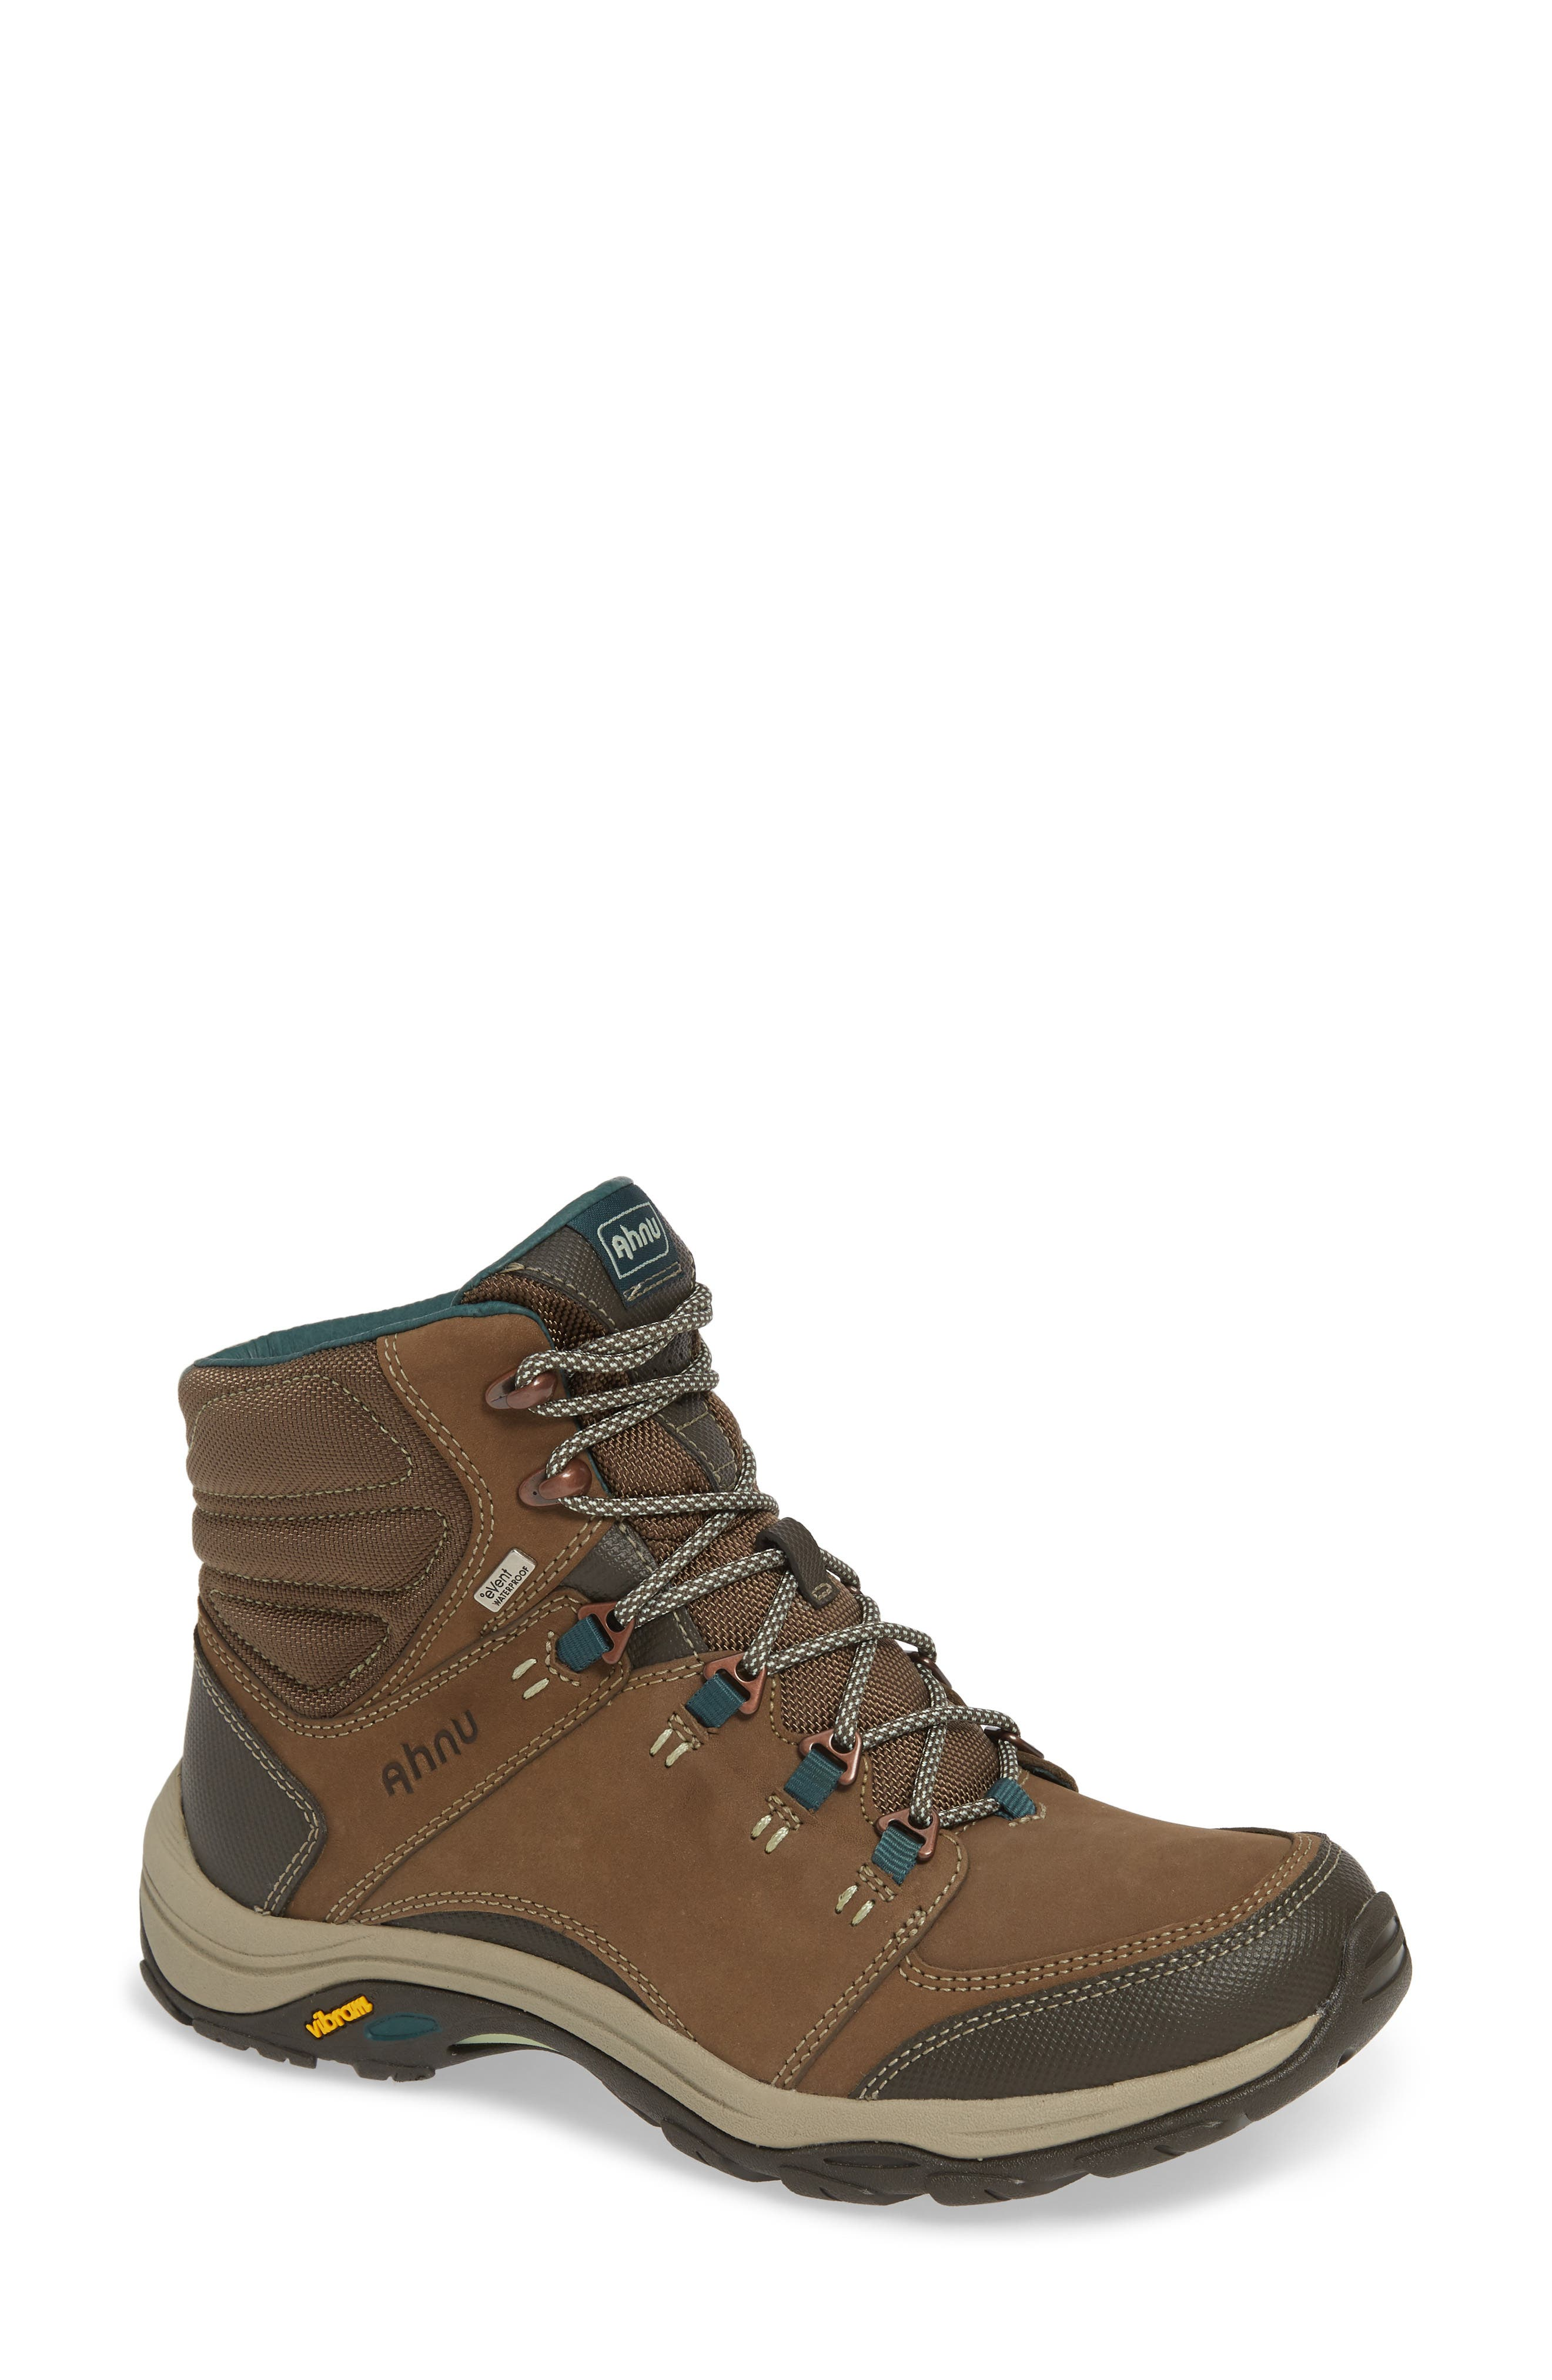 Ahnu By Teva Montara Iii Waterproof Hiking Boot- Brown